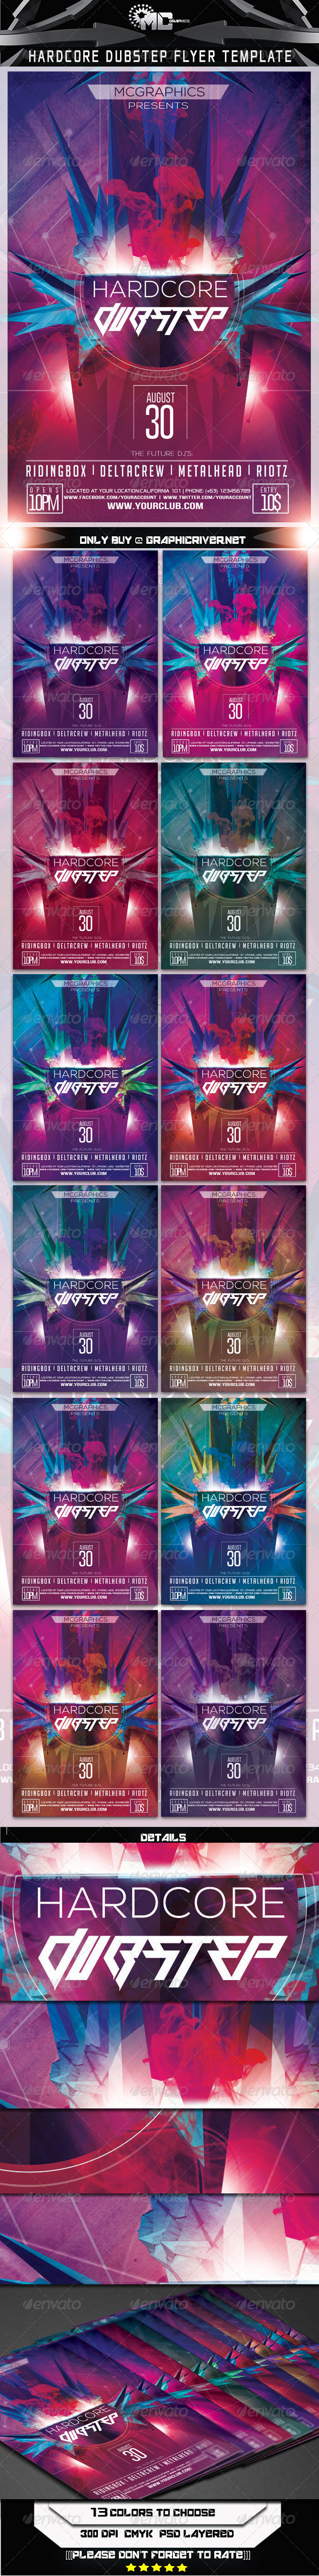 GraphicRiver Hardcore Dubstep Flyer Template 7103916